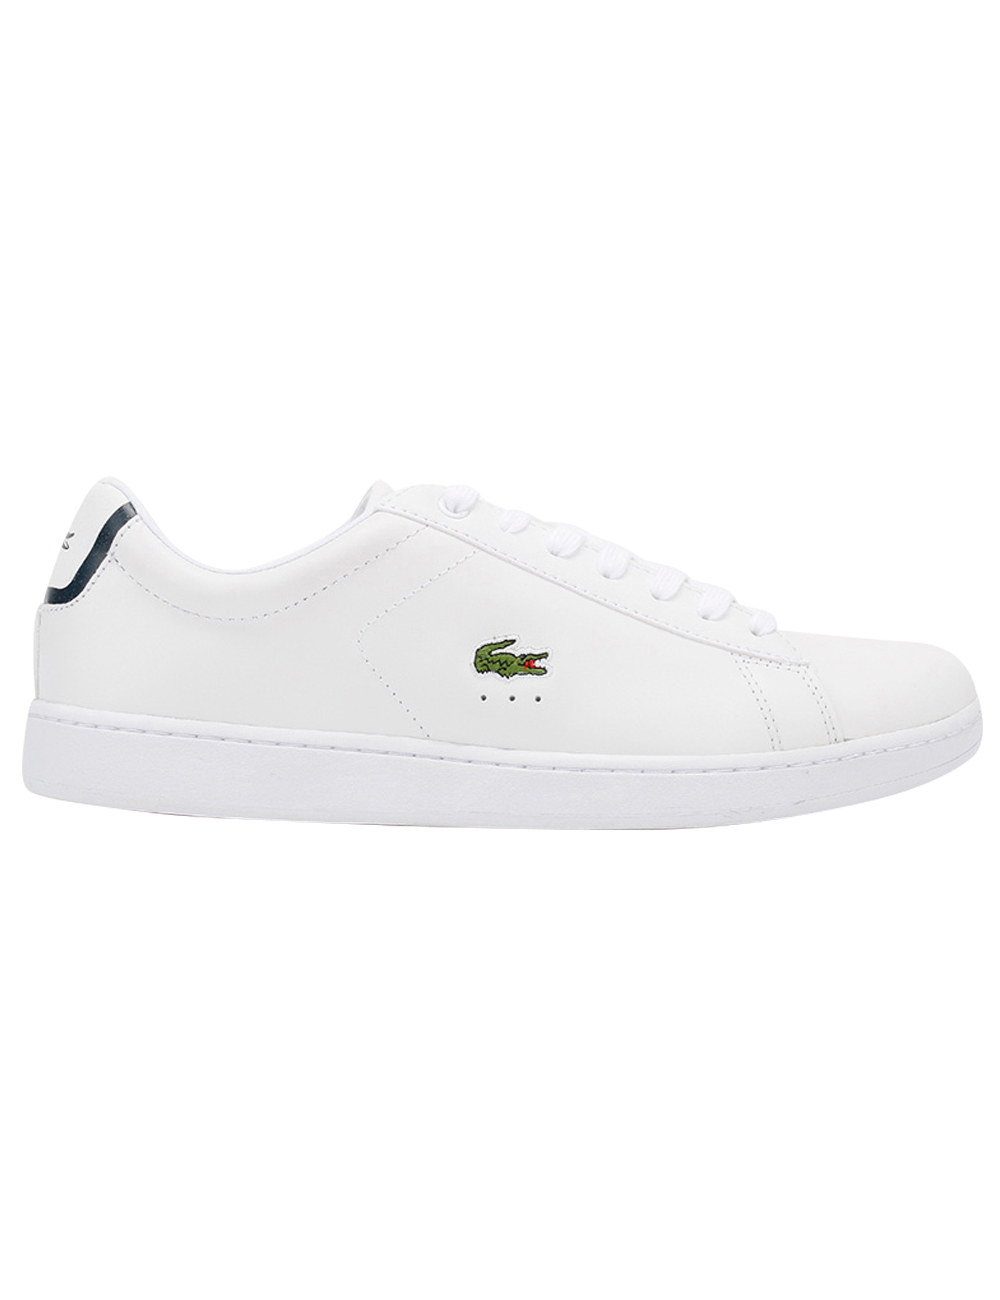 12557e4dd88a De Lacoste Evo» Chaussures Blanc «carnaby Homme PgqwnxtF